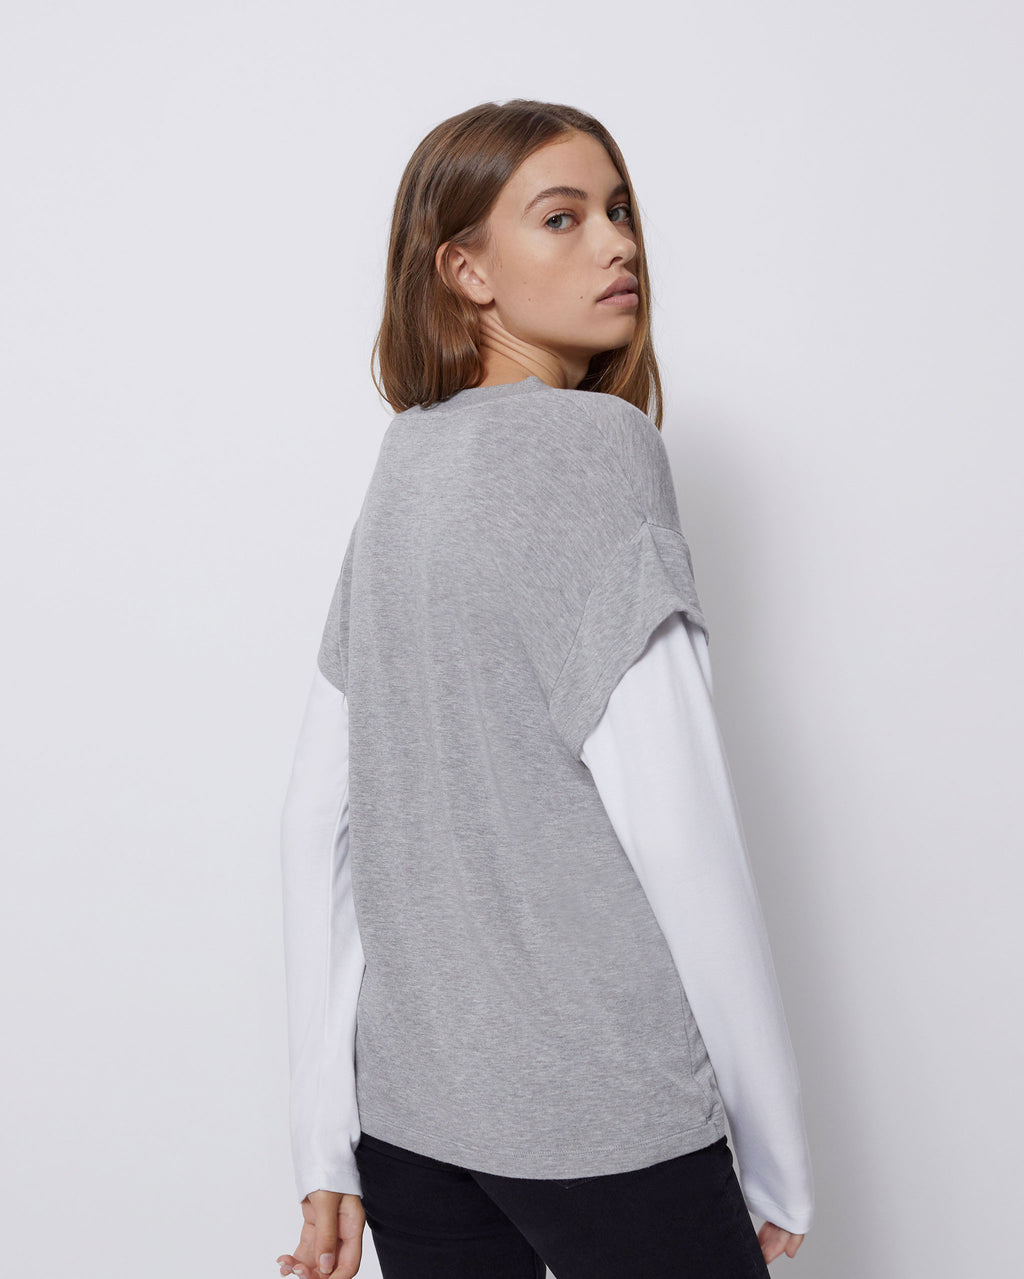 The Lauren Tee in Heather Grey